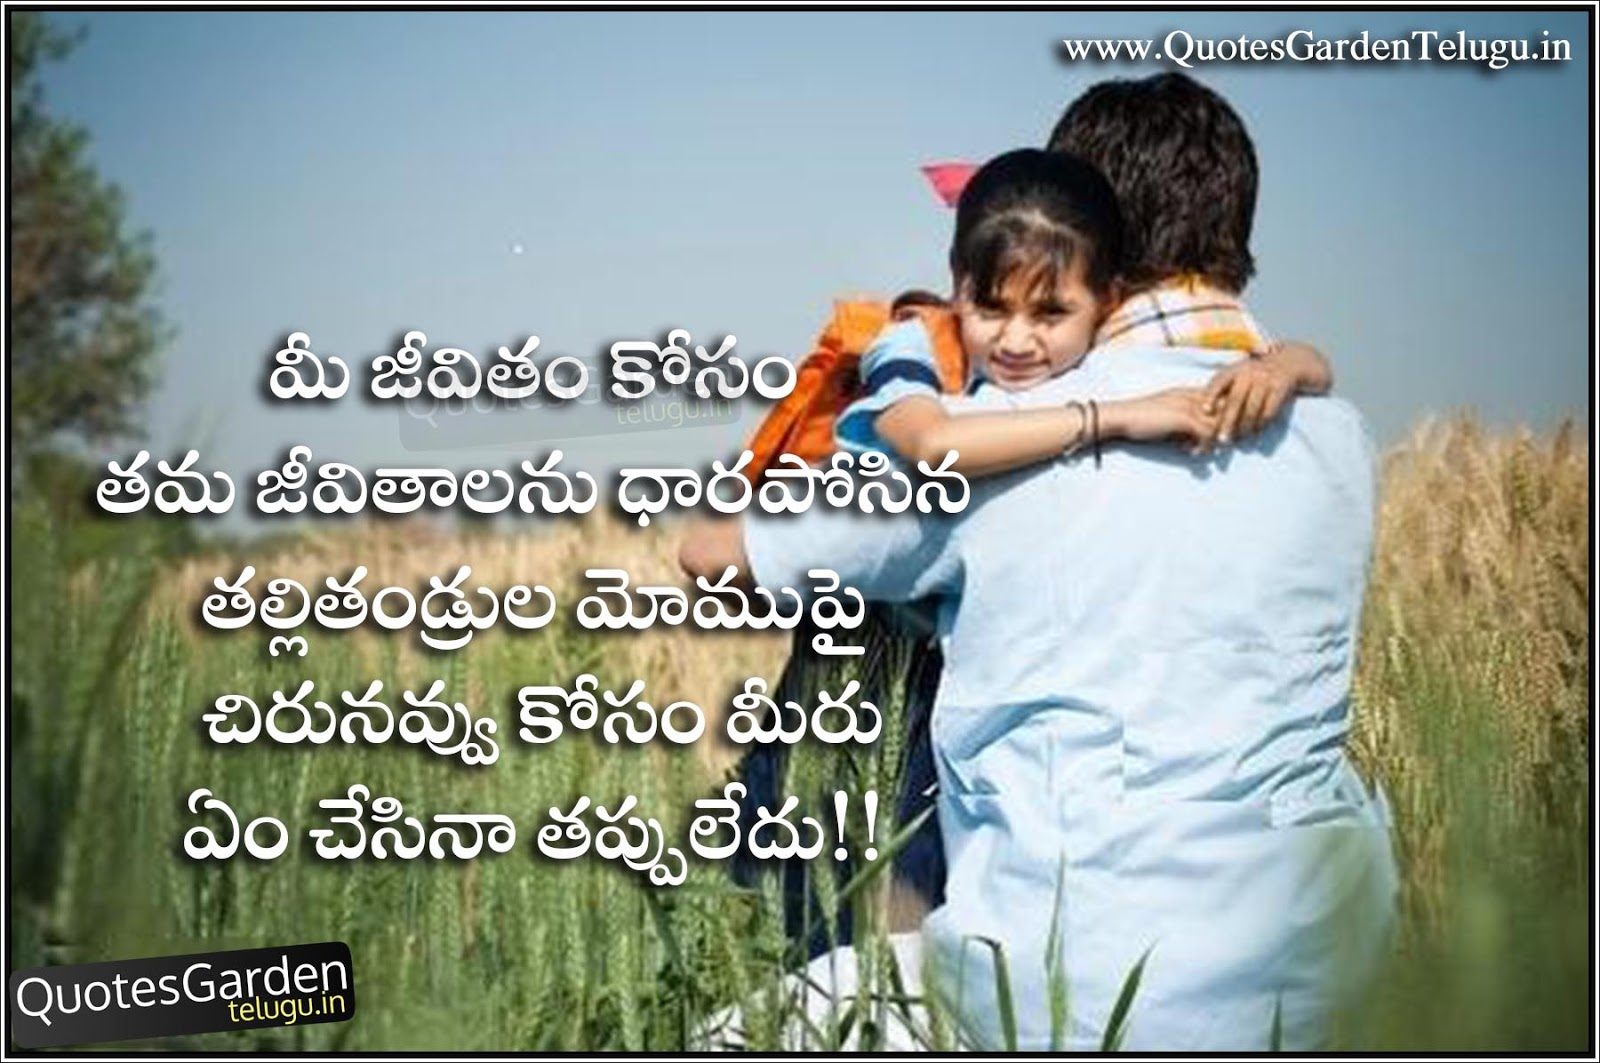 inspirational telugu quotes for students quotes garden